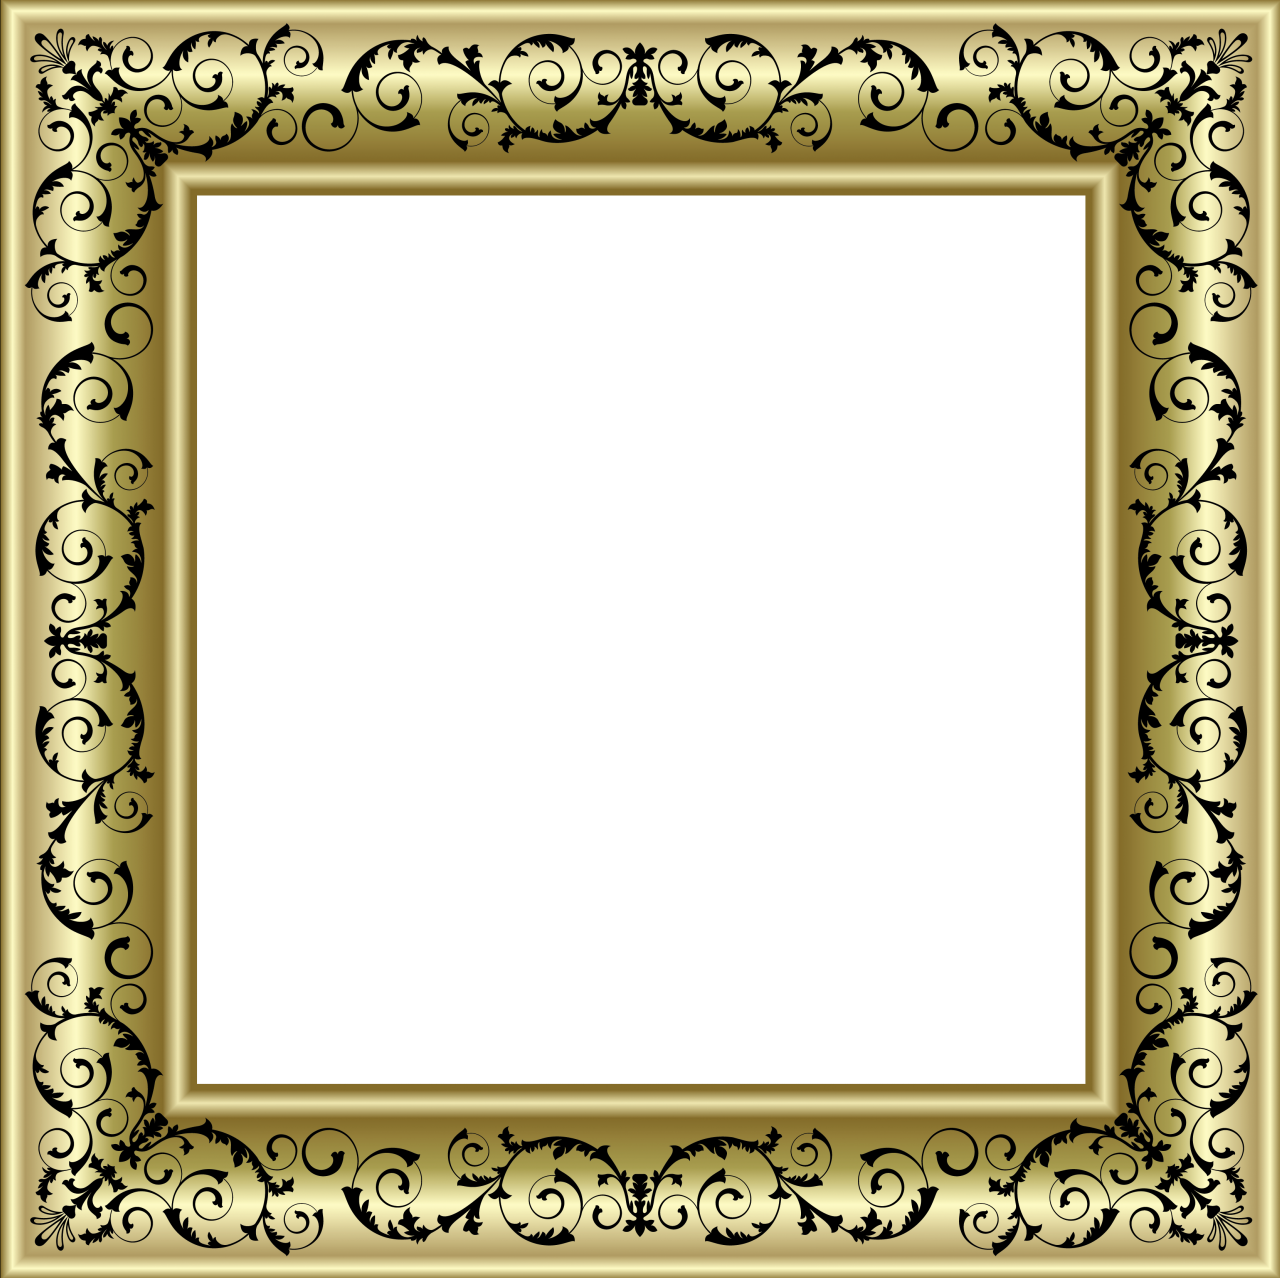 Golden frame vector png. Gold photo with black